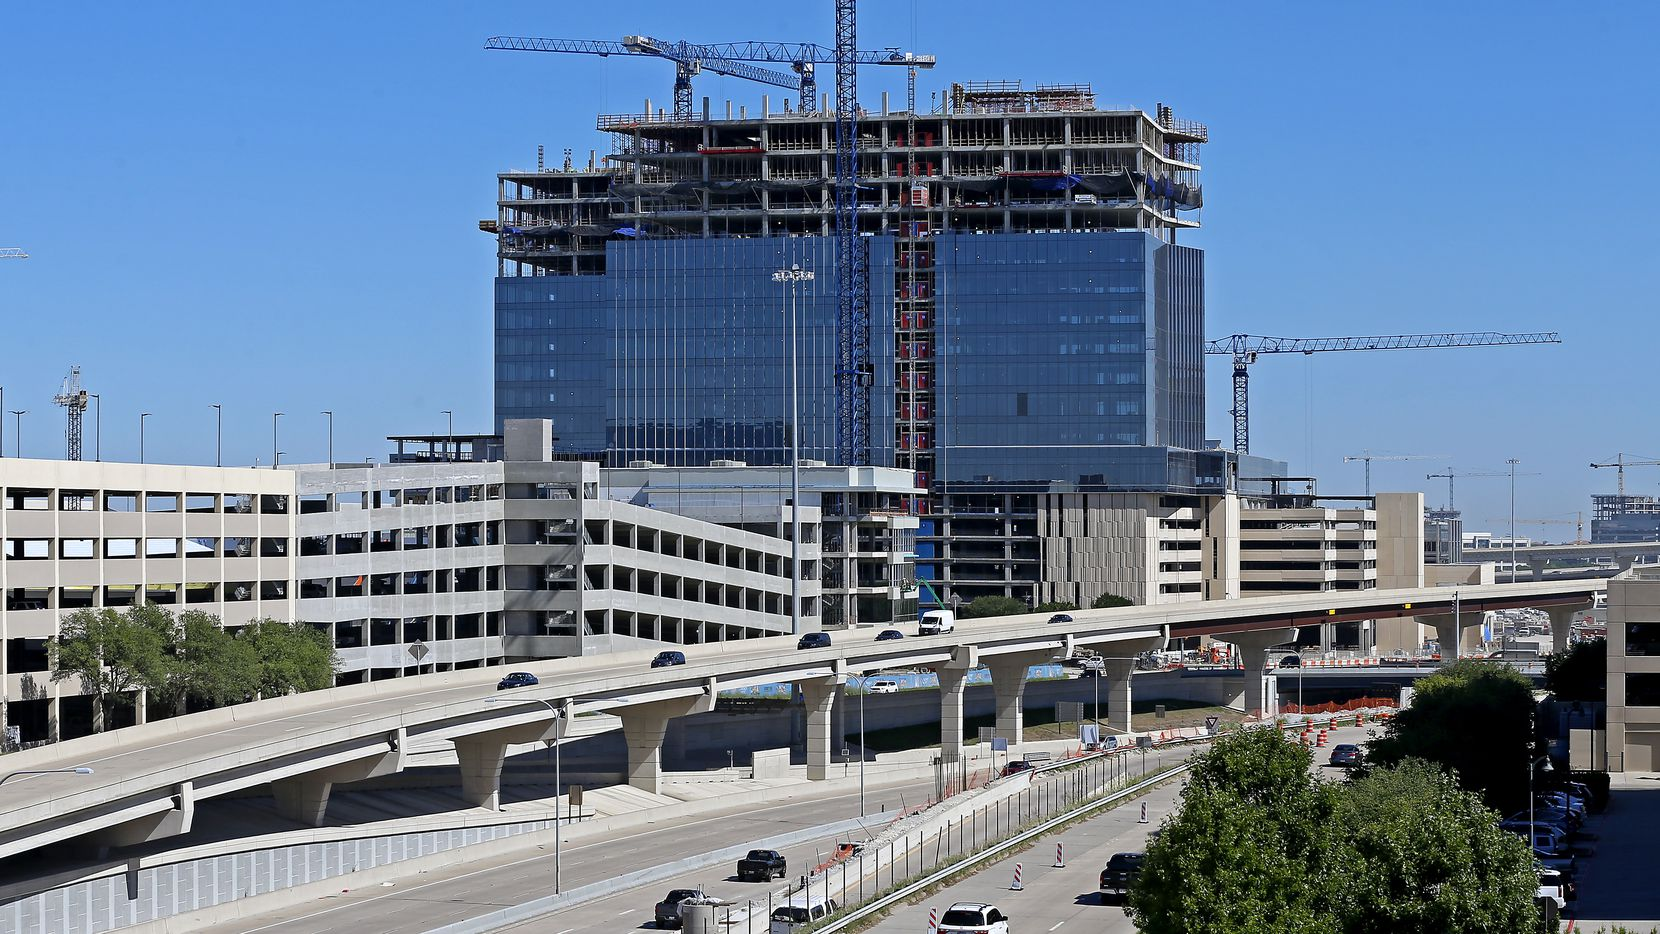 Plano residents who are ticked off about all the traffic, construction and apartments unsuccessfully voted to stop urban growth in the city in the face of thousands of people moving to the area.